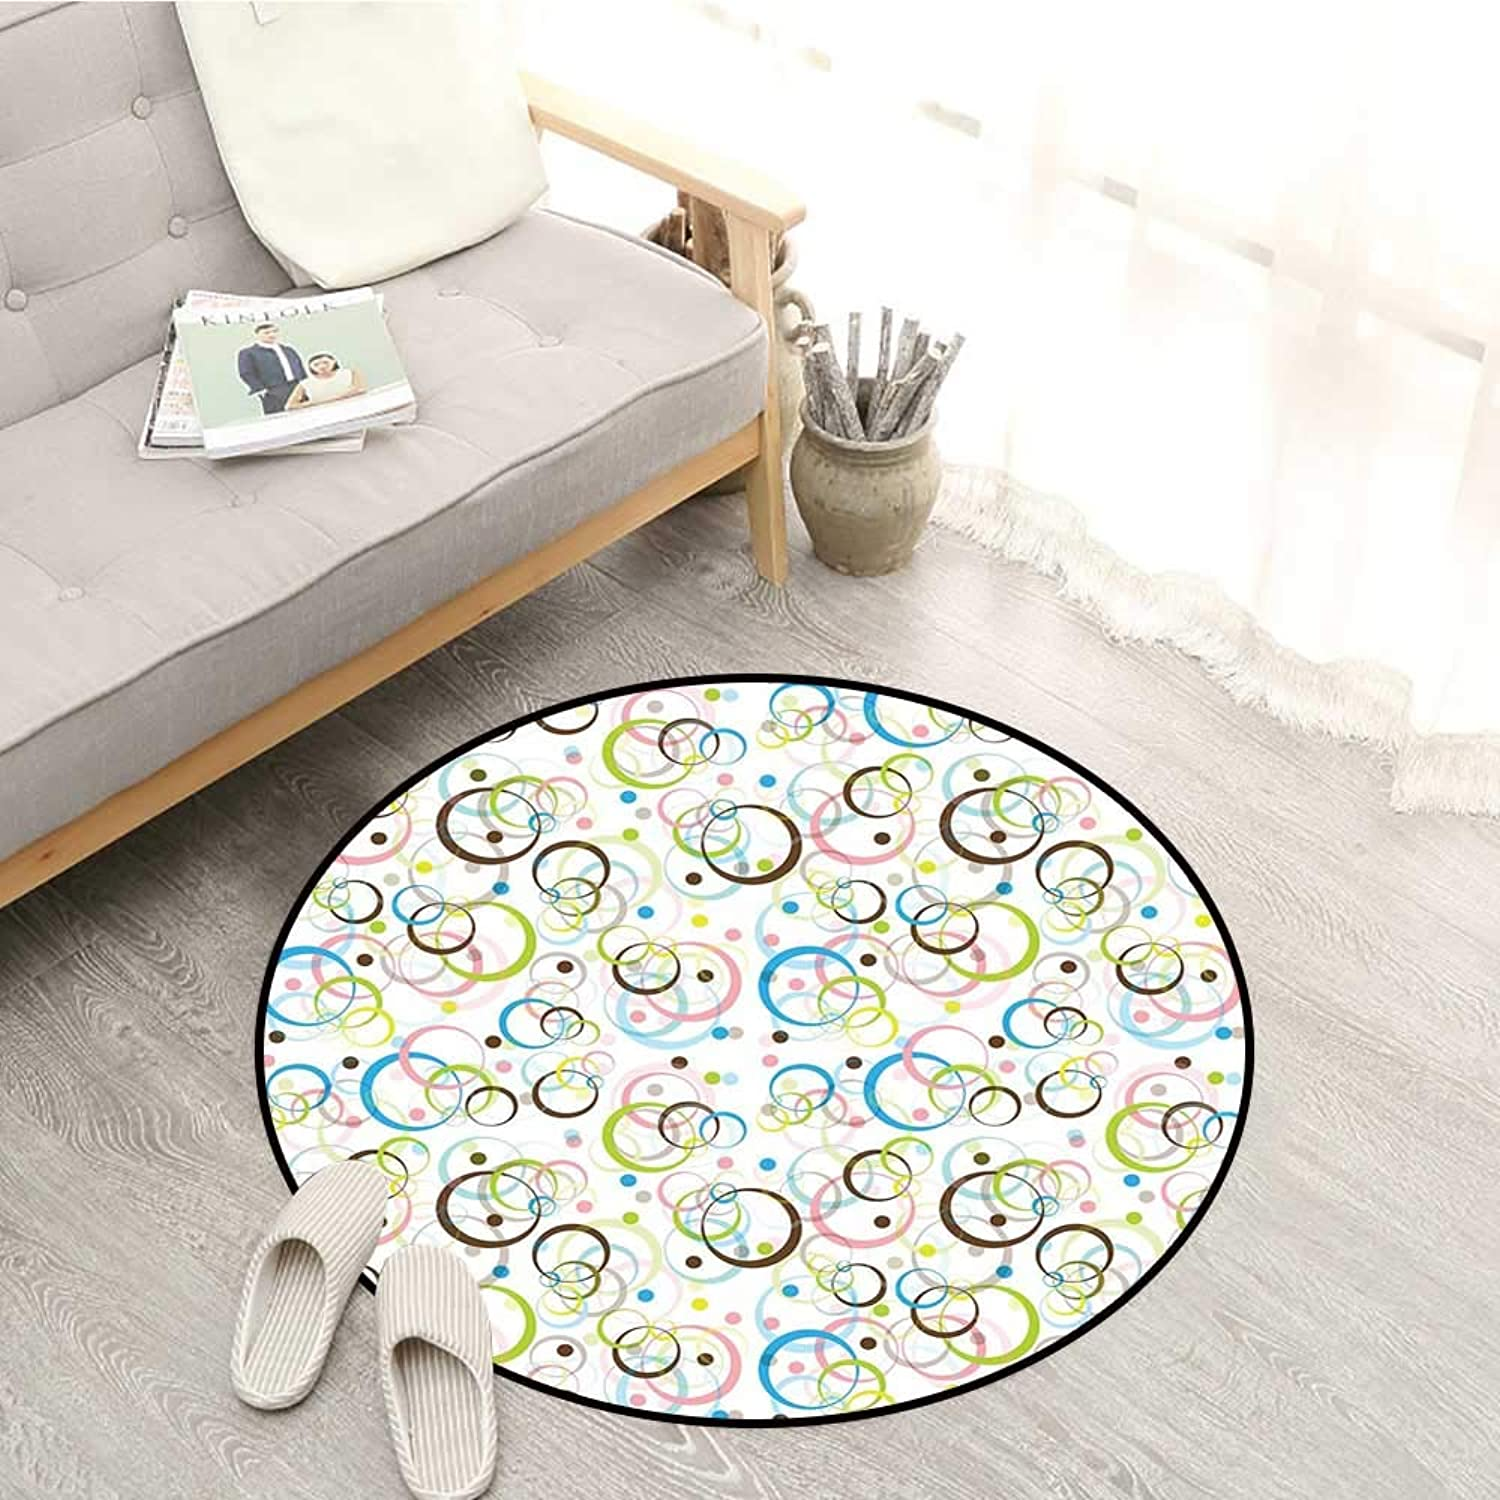 Brown and bluee Living Room Round Rugs Intertwined Circles Traditional Polka Dots Pattern Abstract Graphic Design Sofa Coffee Table Mat 3'11  Multicolor